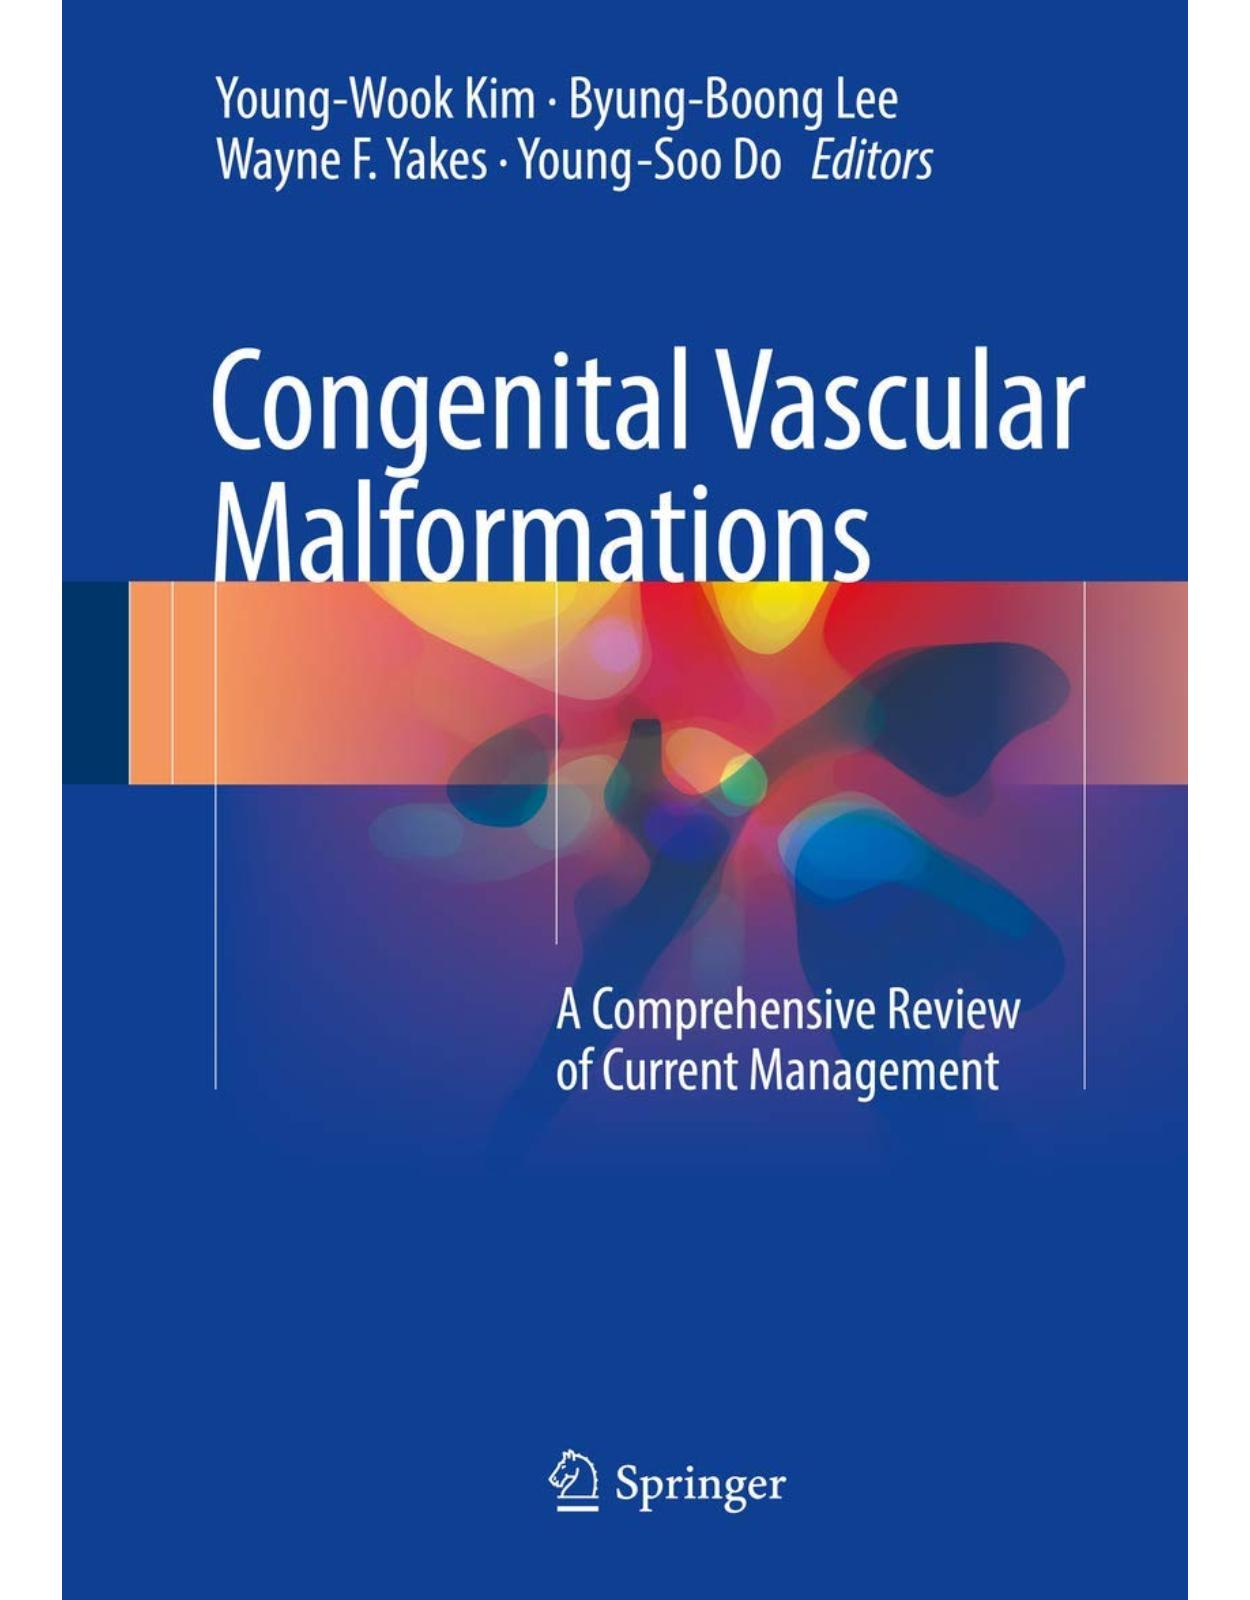 Congenital Vascular Malformations: A Comprehensive Review of Current Management